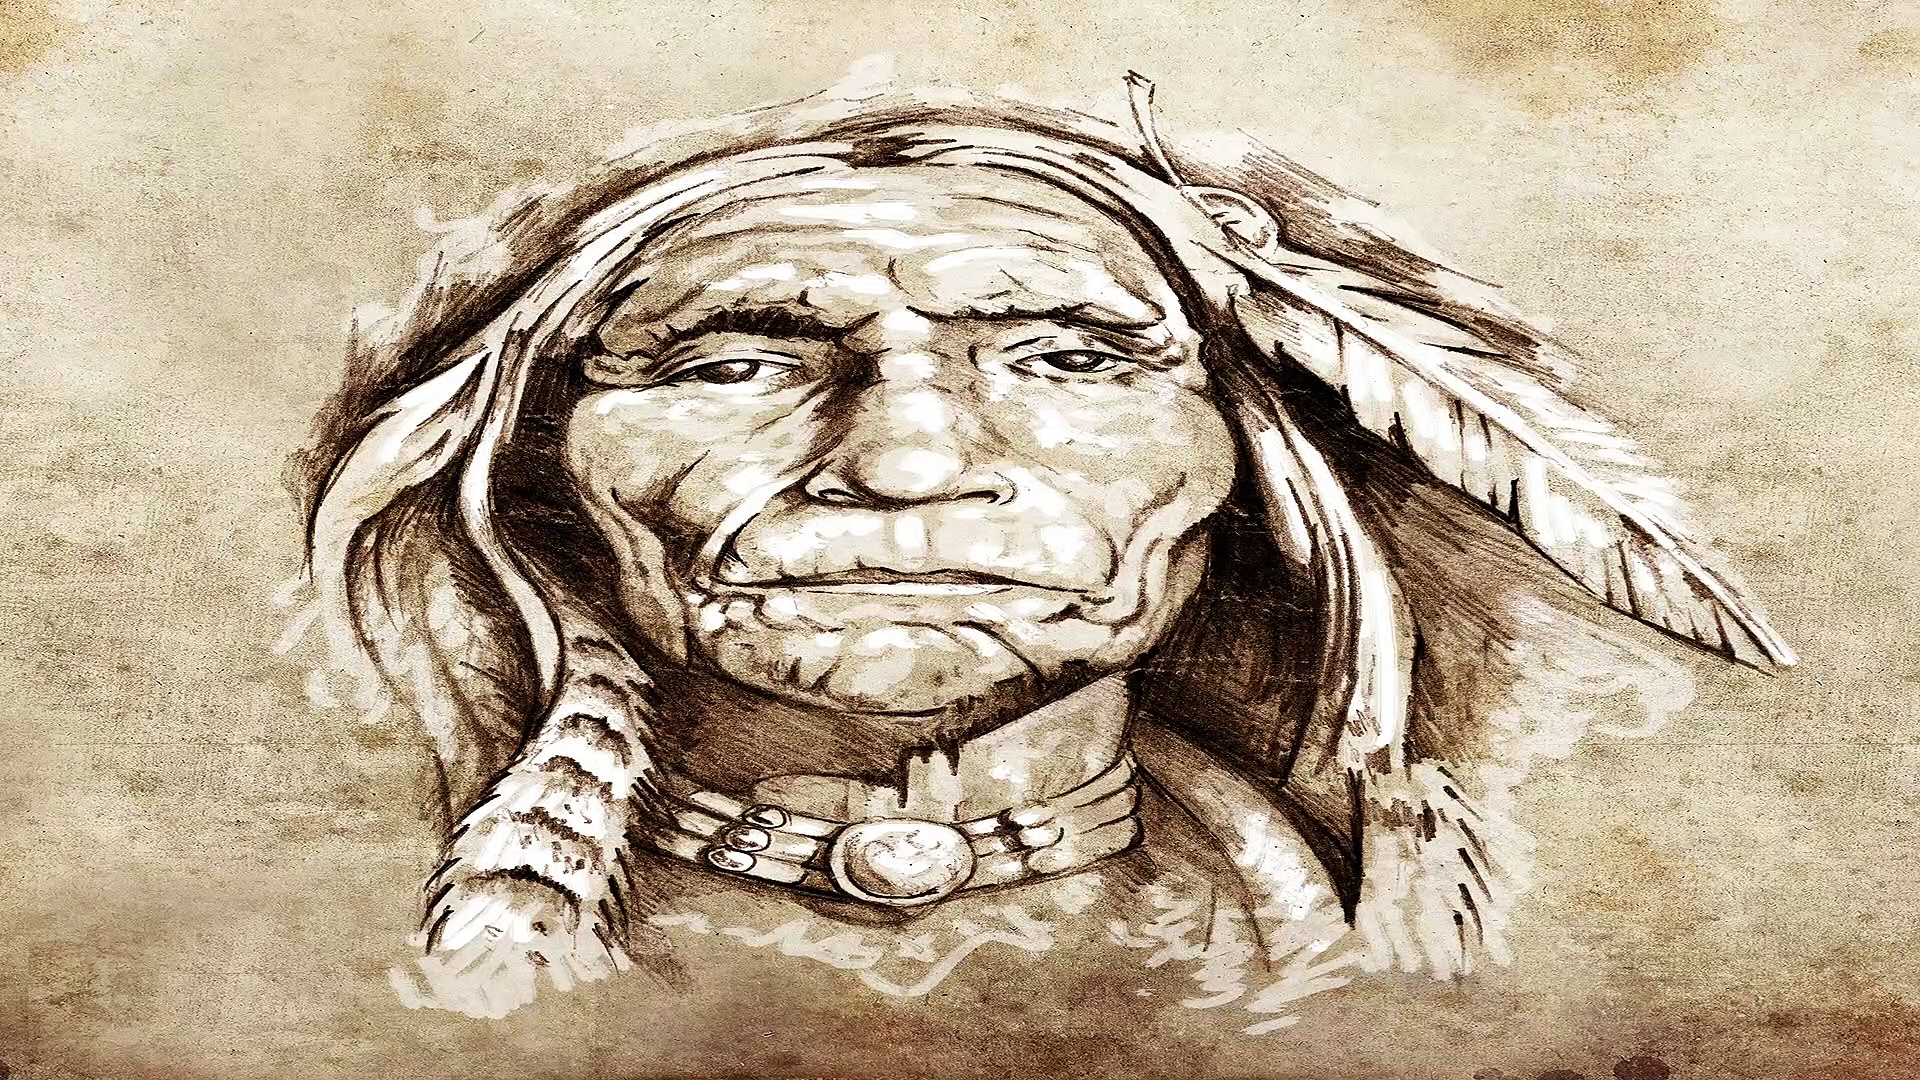 EPIC NATIVE AMERICAN MUSIC | 9 HOURS – 4K, Meditation, Native American Music, Shaman Music, Spiritual Music